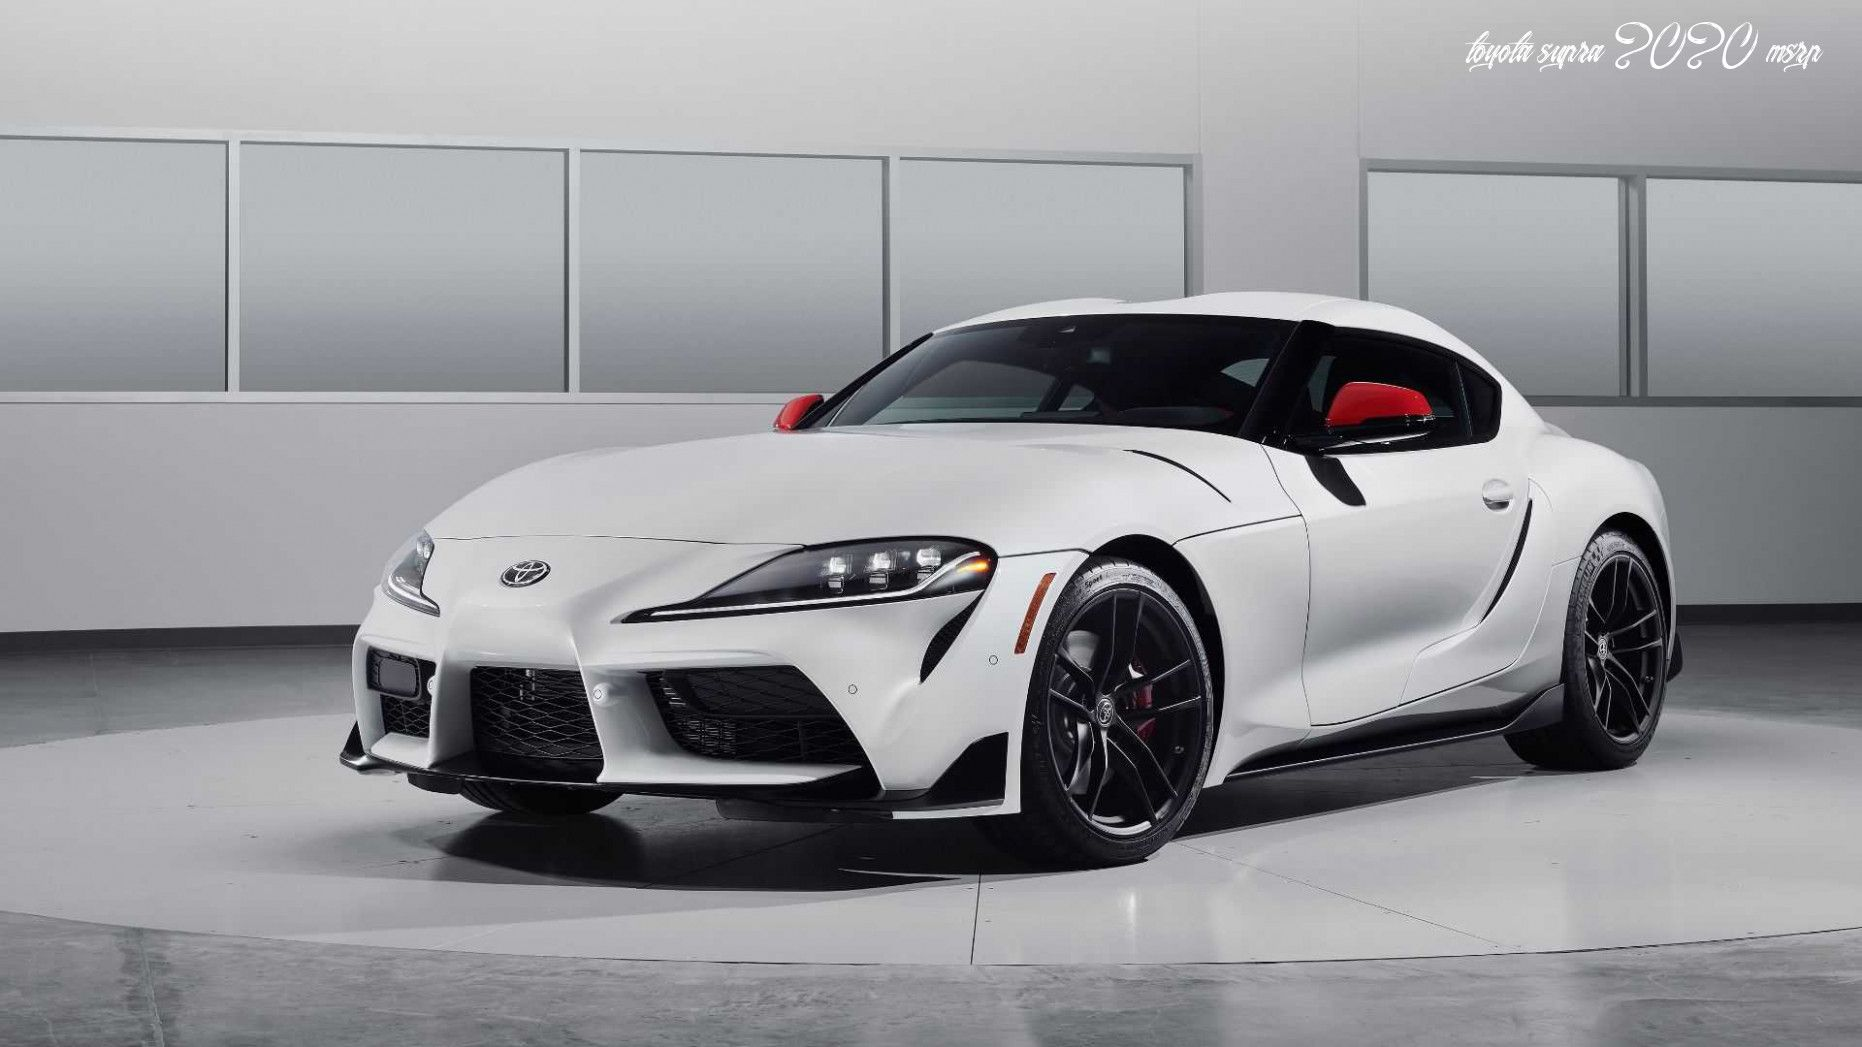 Toyota Supra 2020 Msrp Performance In 2020 New Toyota Supra Toyota Supra Toyota Cars